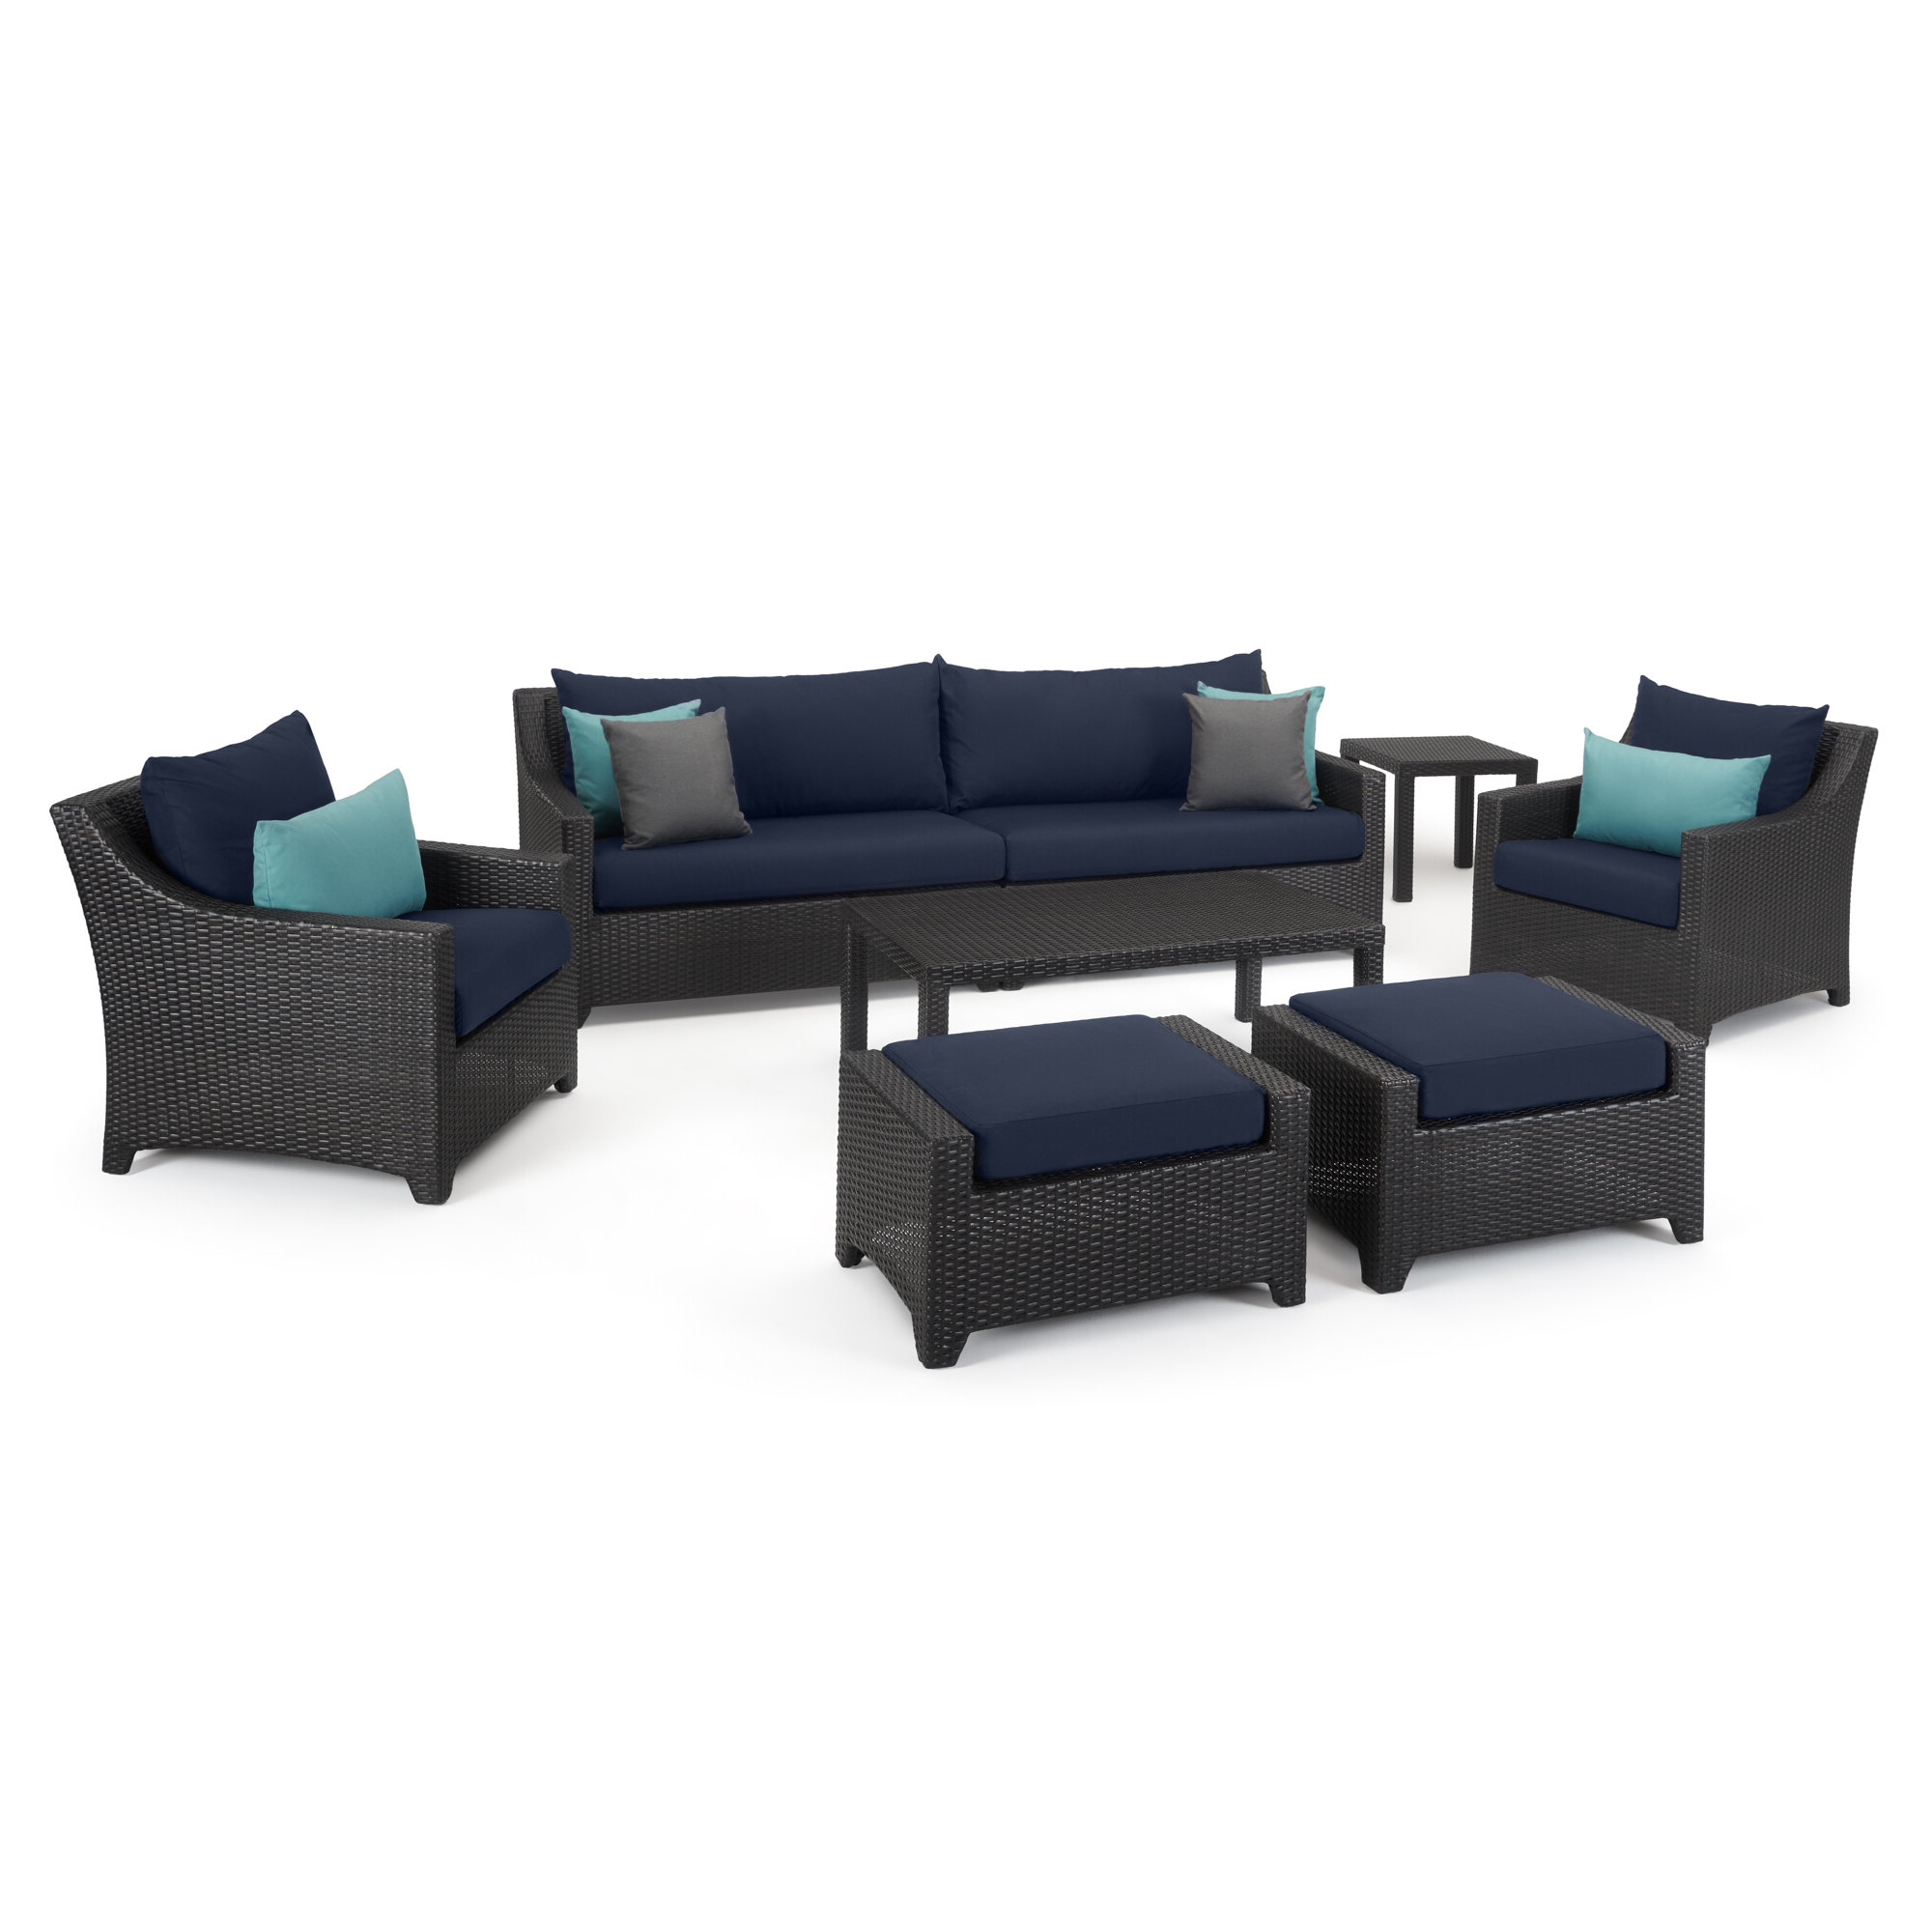 Northridge Loveseats With Cushions Within 2019 Northridge 8 Piece Sofa Set With Cushions (View 9 of 20)